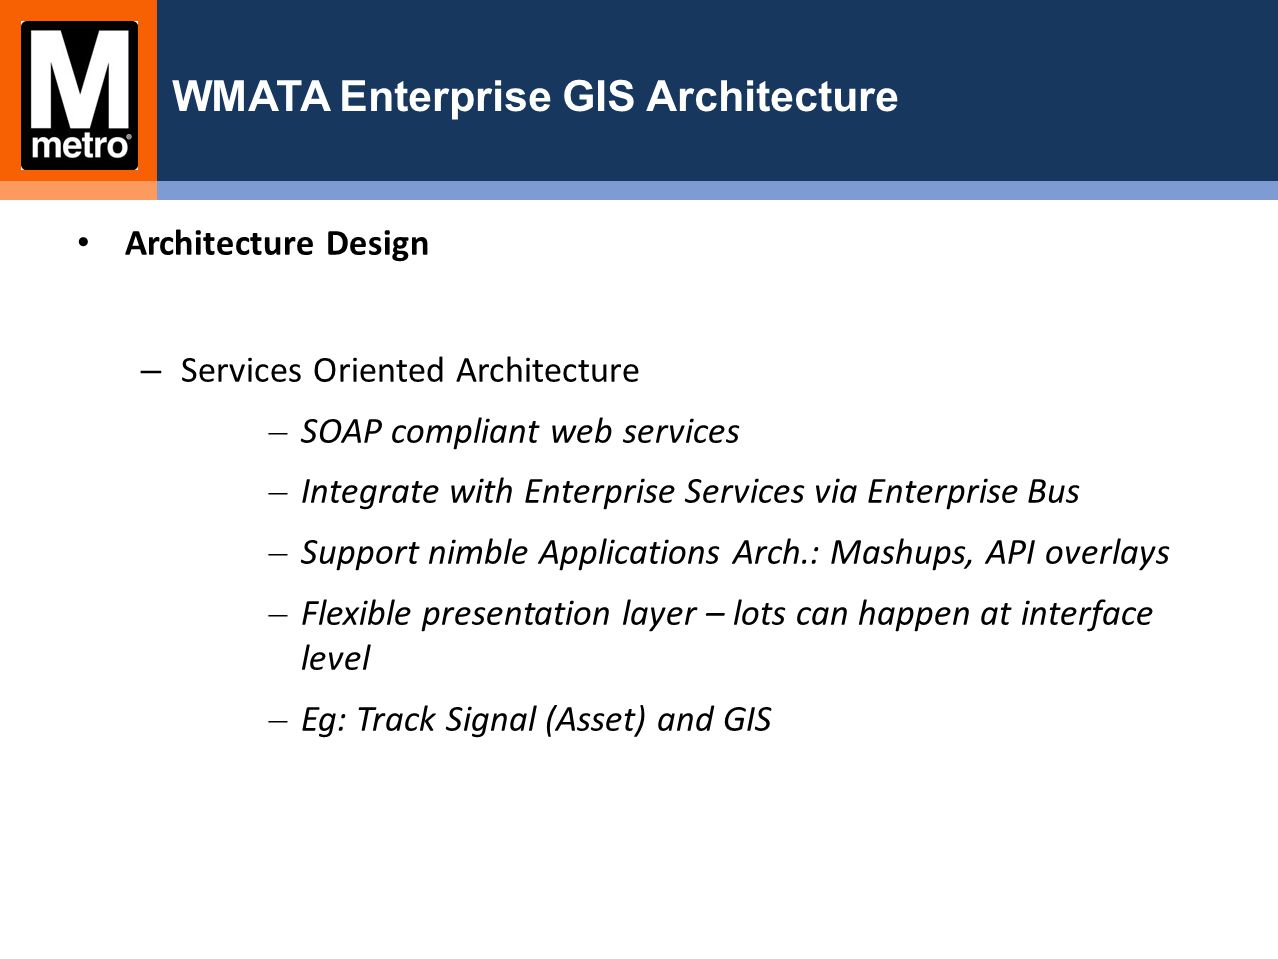 WMATA Enterprise GIS Architecture